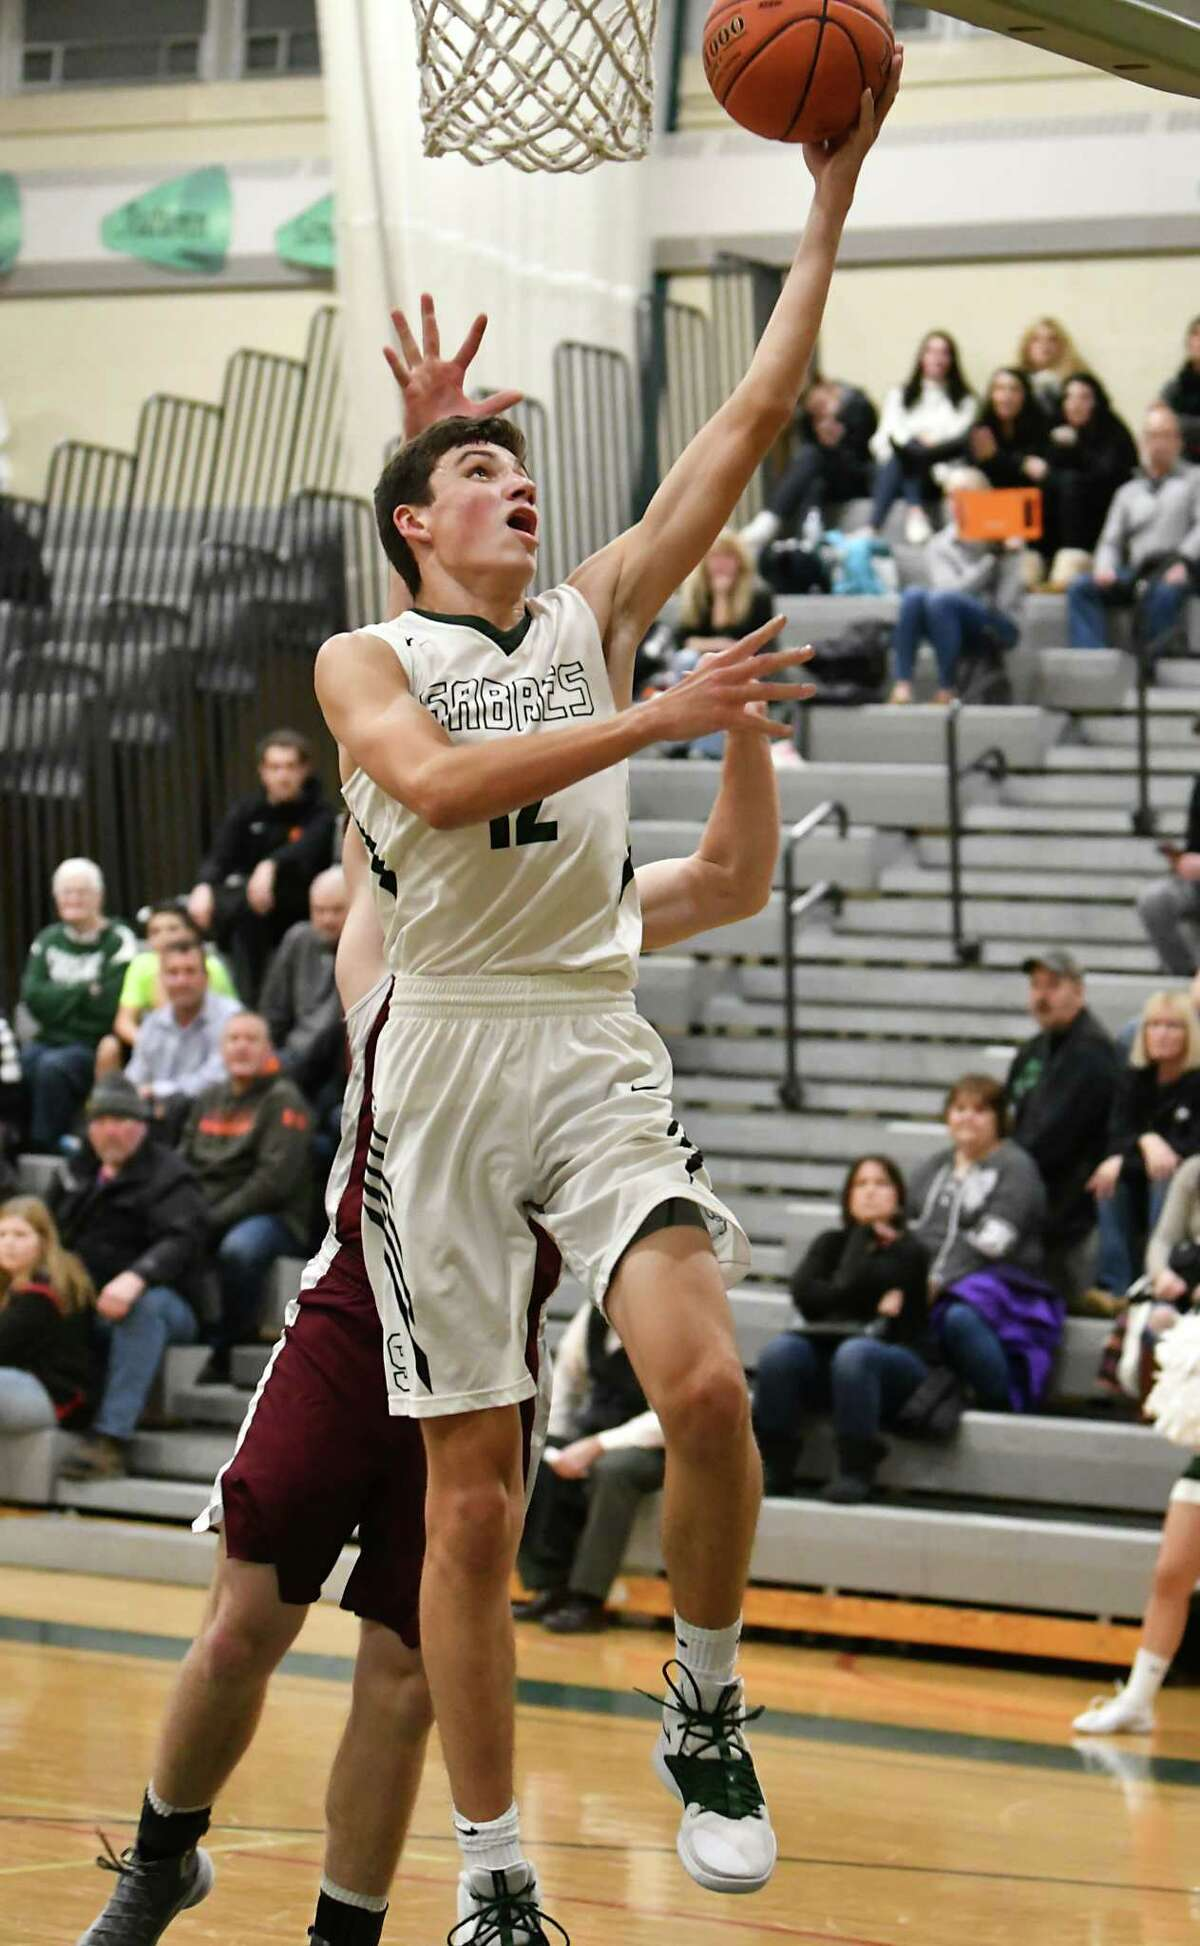 Schalmont's Nick Boyd makes a layup during a basketball game against Lansingburgh on Tuesday, Dec. 11, 2018 in Rotterdam, N.Y. (Lori Van Buren/Times Union)